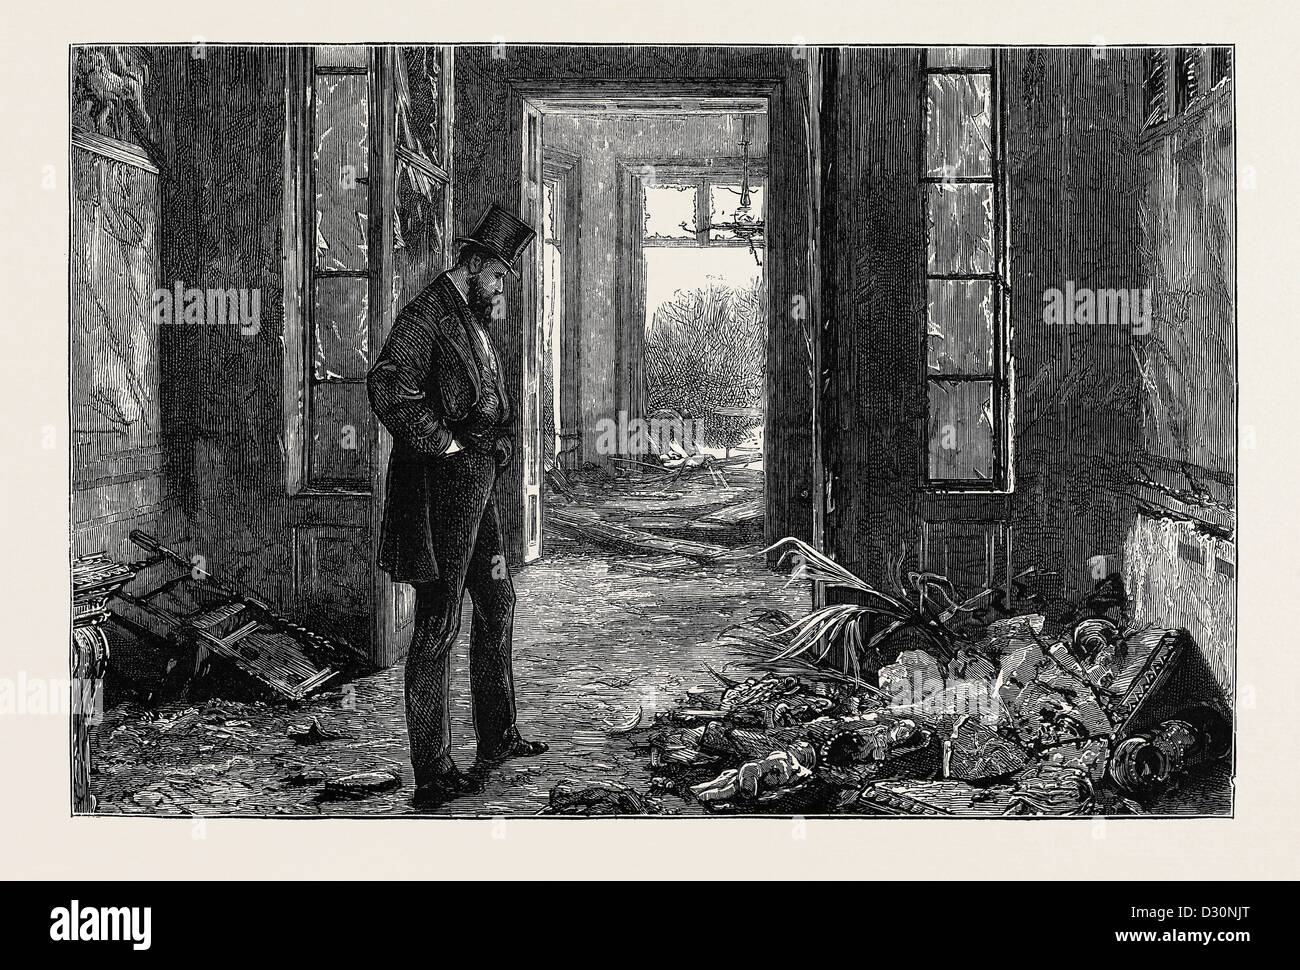 AFTER THE EXPLOSION, WRECK OF A COLLECTION OF BAS RELIEFS, CHINA, CARVINGS, ETC., IN MR. GERSTENBERG'S HOUSE - Stock Image